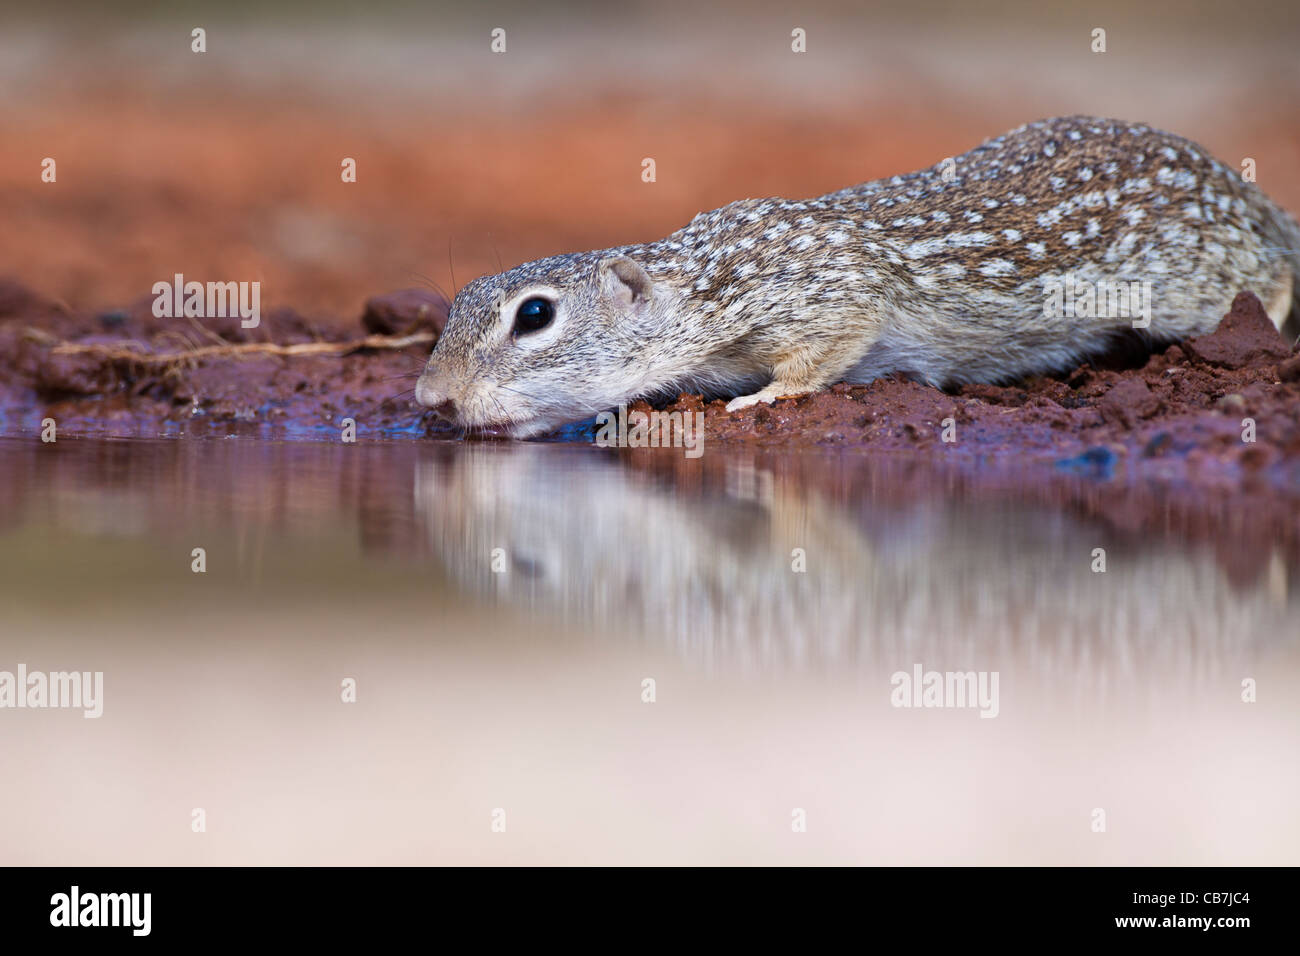 Mexican Ground Squirrel, Spermophilus mexicanus, at a pond in South Texas. Stock Photo